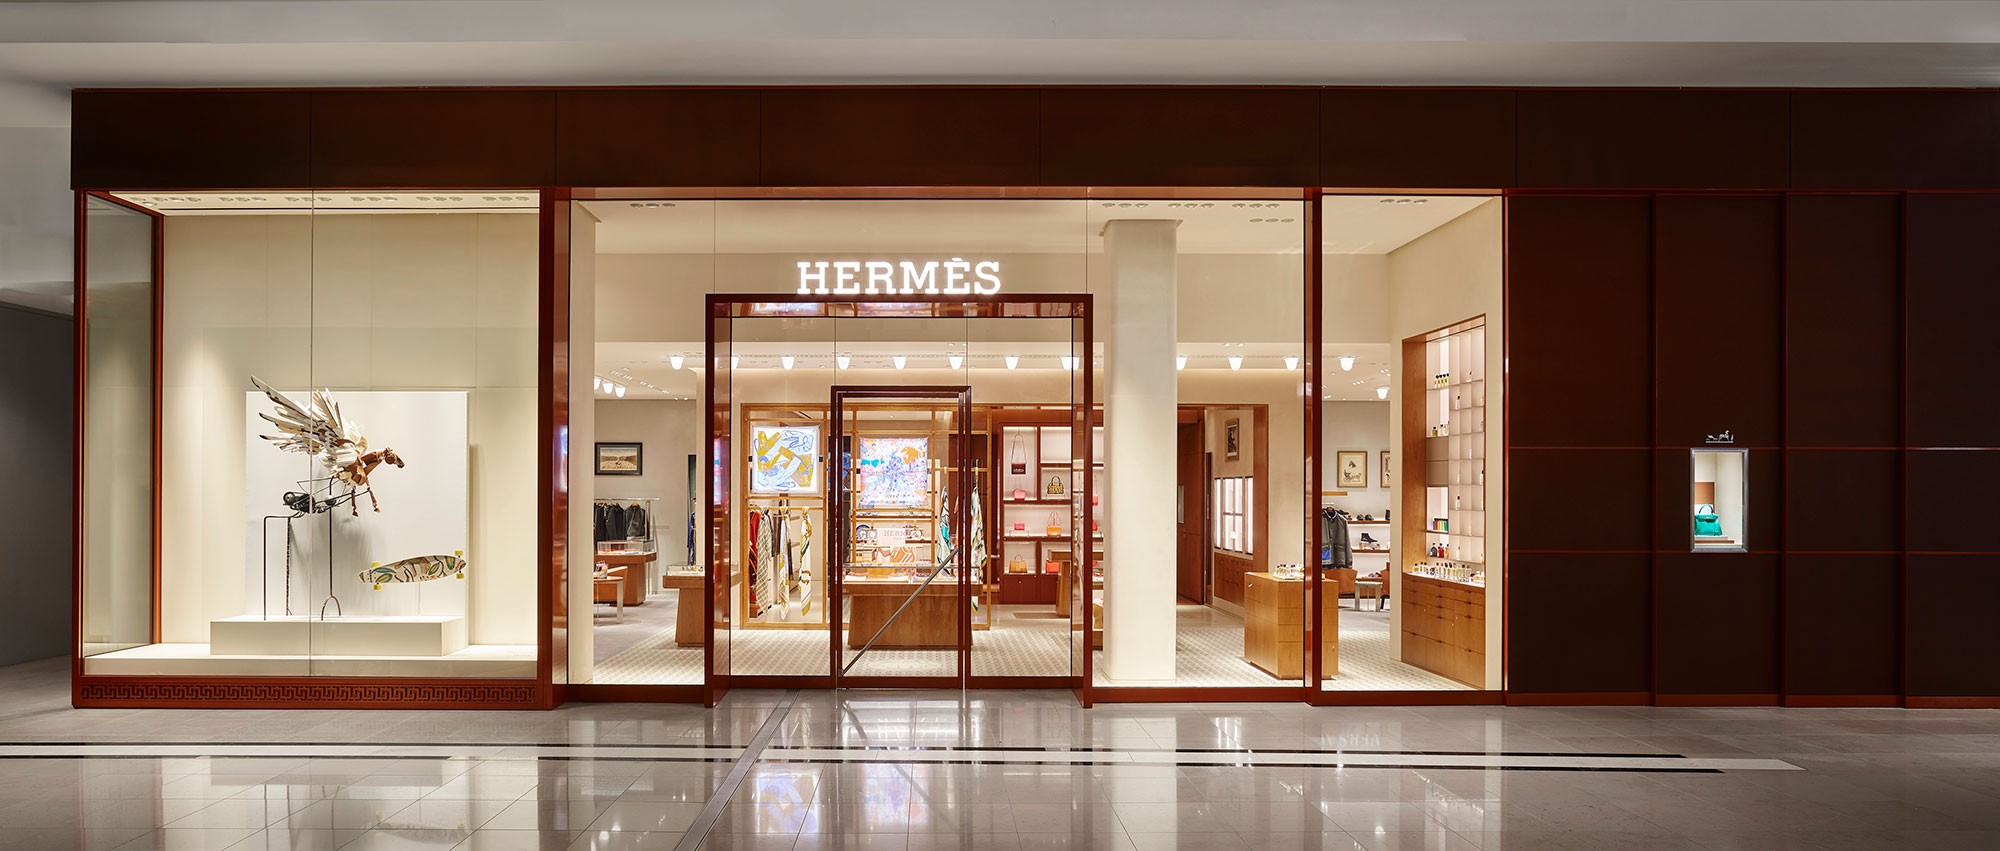 Hermes_Chadston_Melbourne_301118_19668